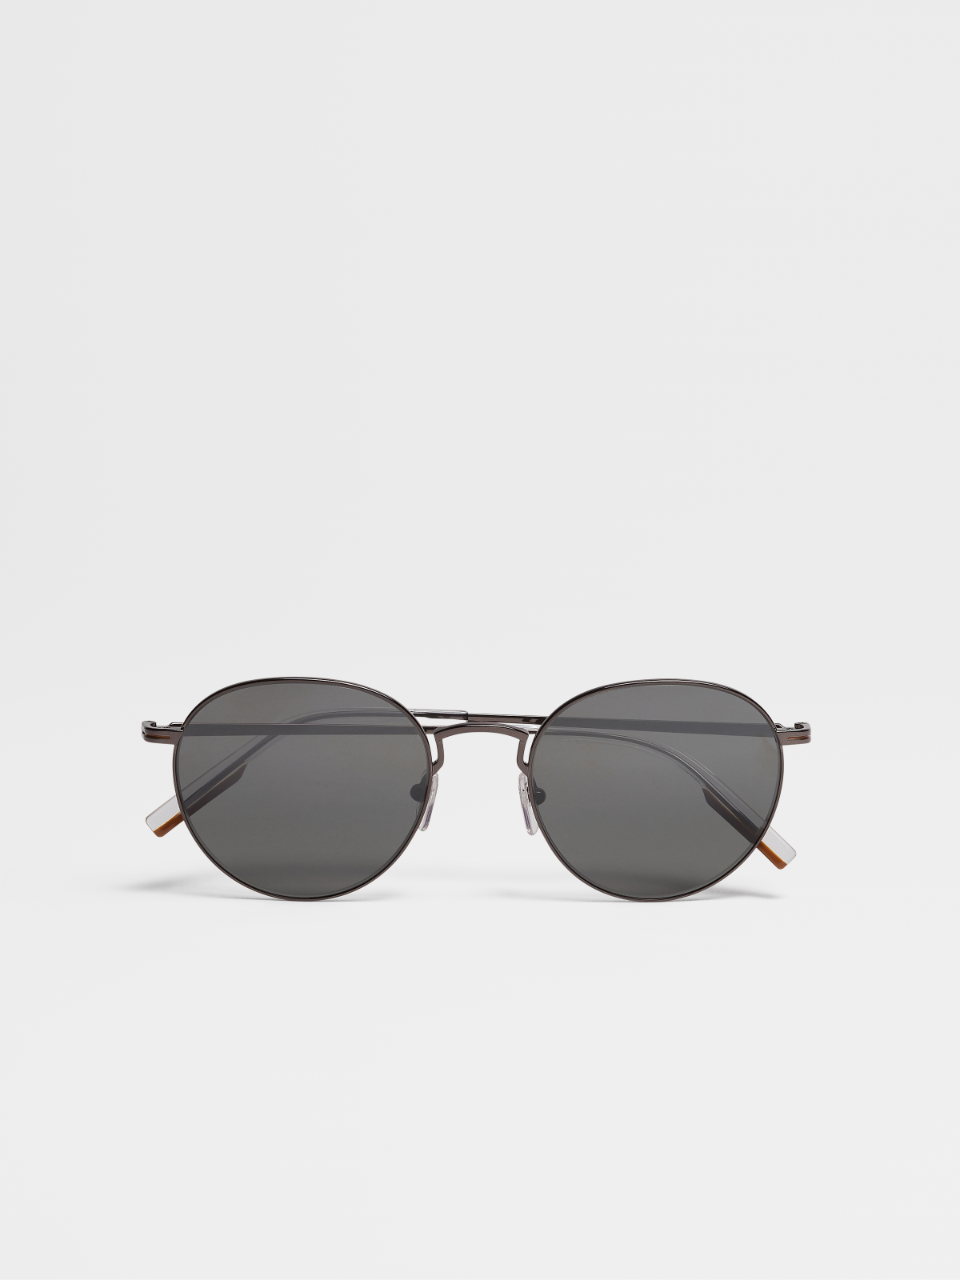 Leggerissimo Metal Sunglasses